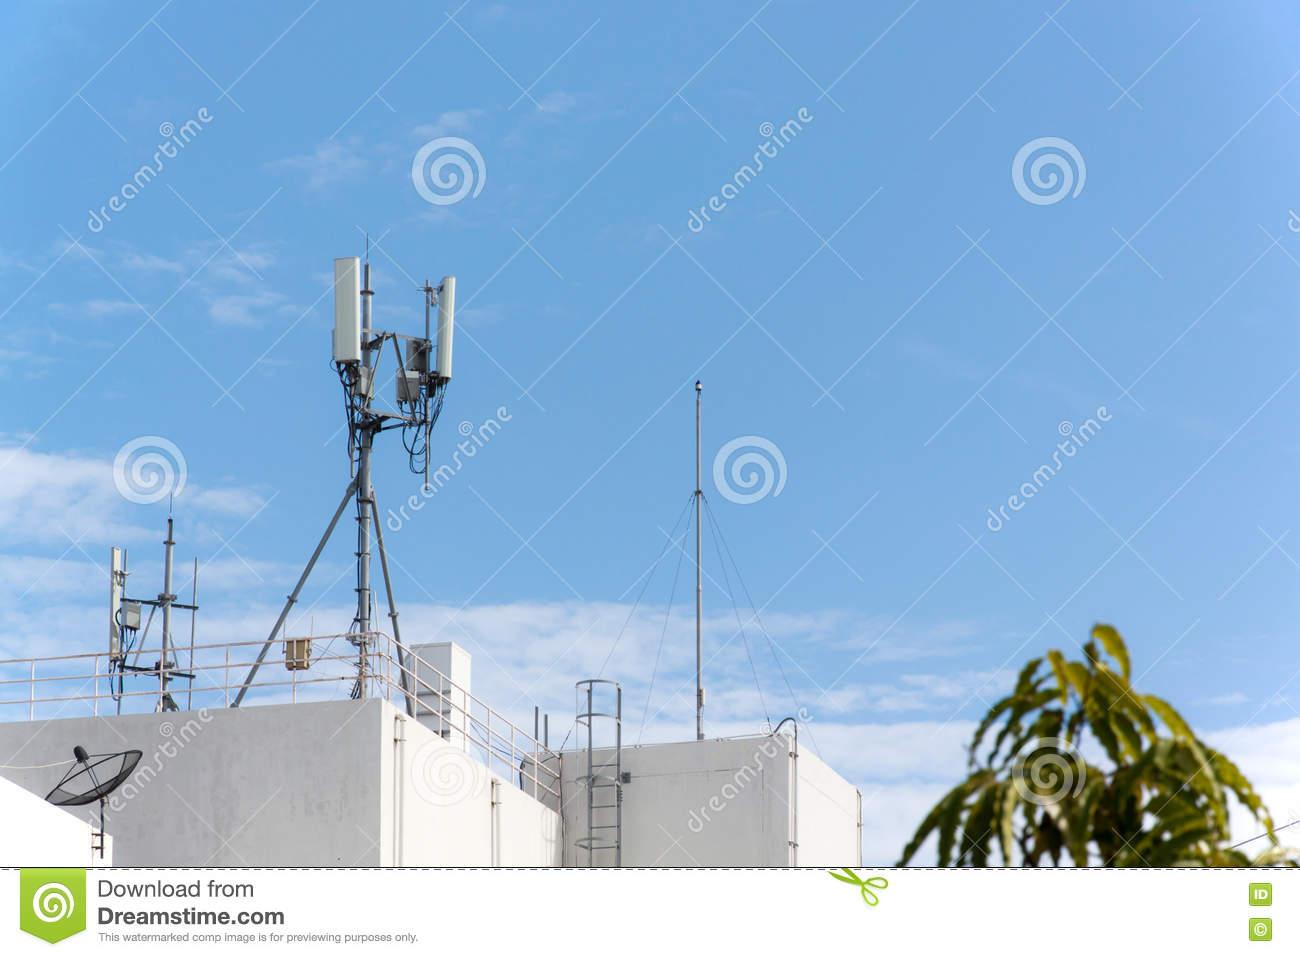 Antenna Mobile Communication Stock Image - Image of cable, wireless